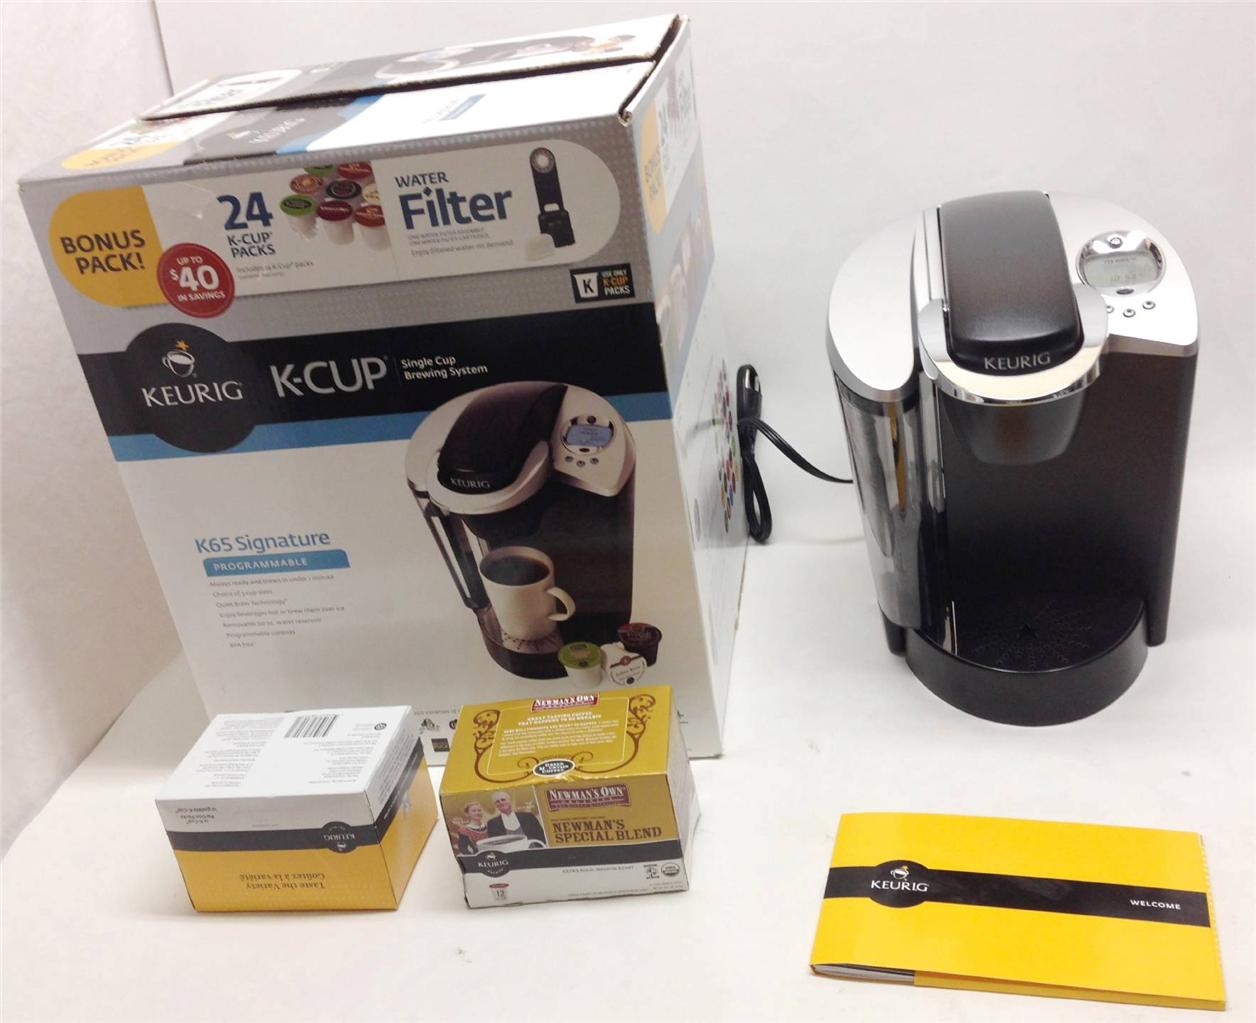 Keurig Coffee Maker Not Enough Water : Keurig B60 Single Cup Coffee Maker 24 K Cups Water Filter eBay